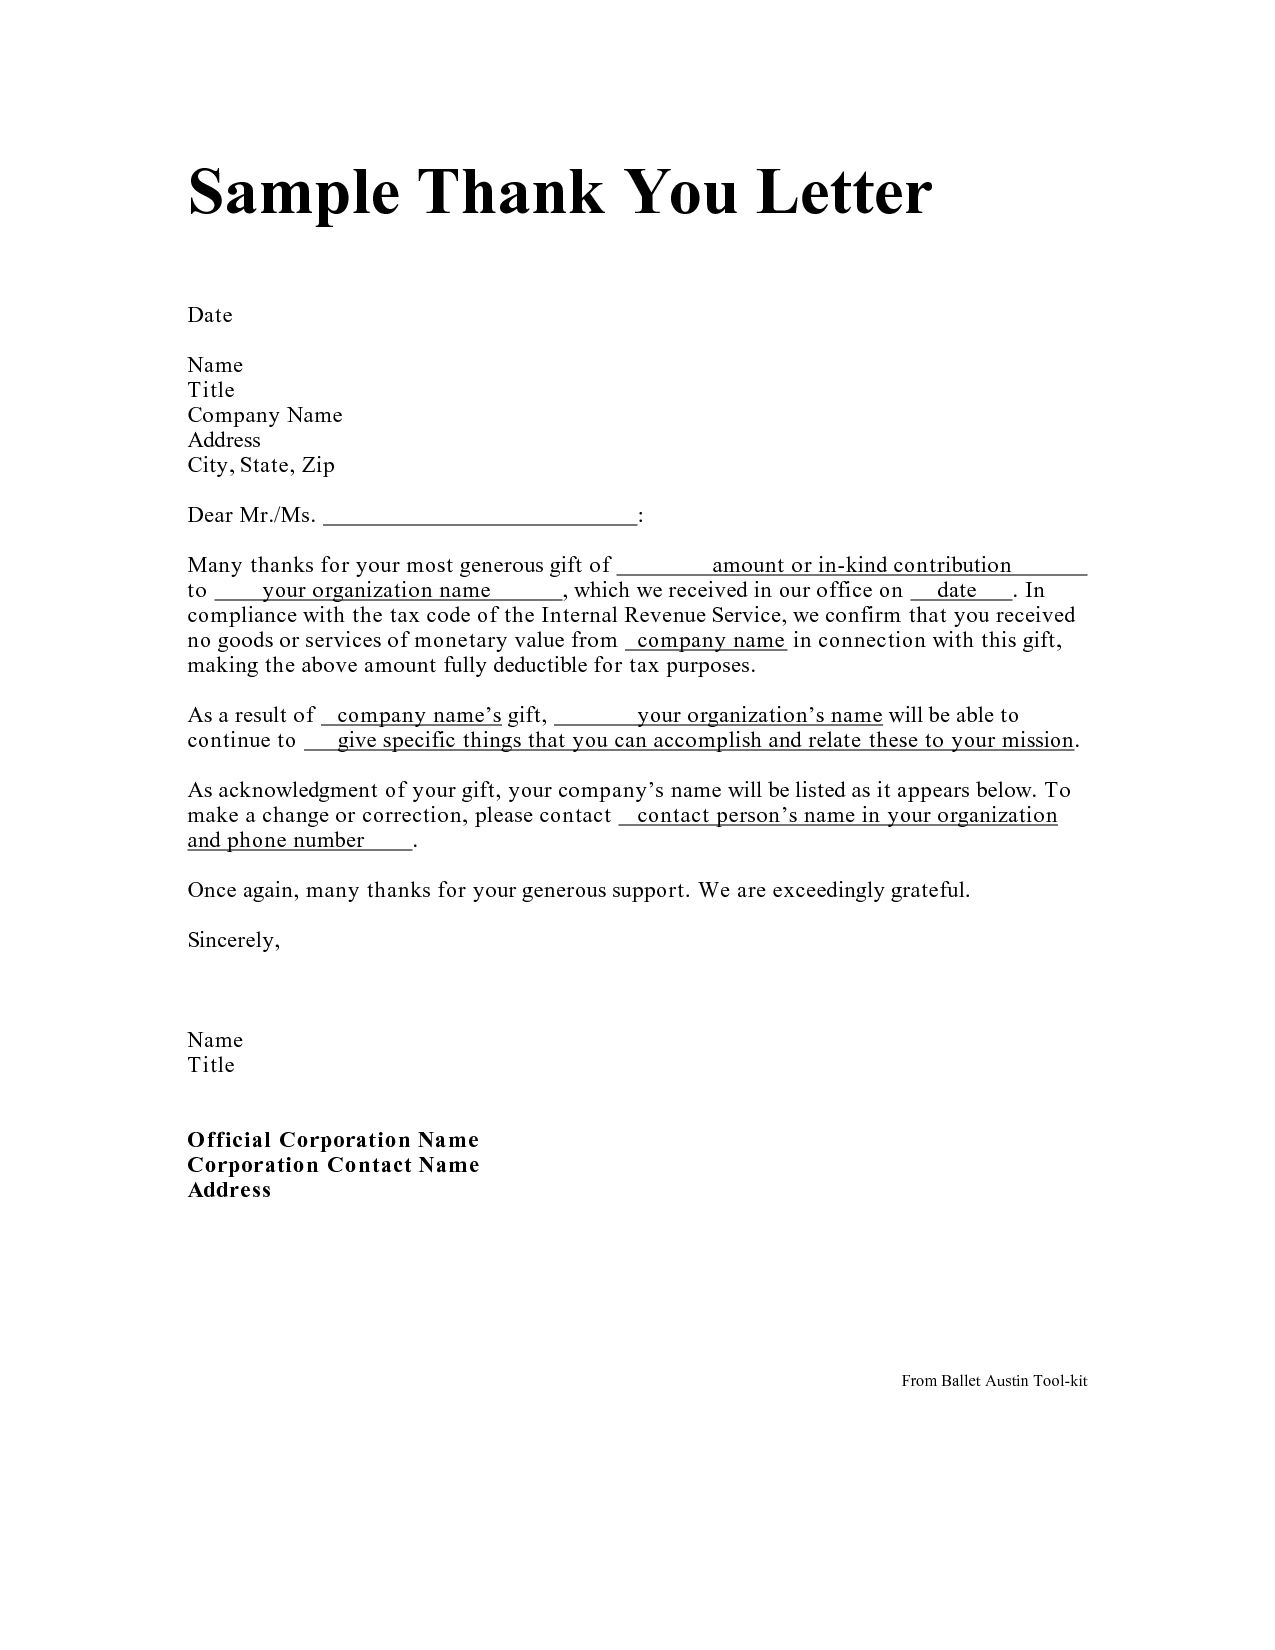 Appreciation letter sample template learnhowtoloseweight thank you appreciation letter sample template learnhowtoloseweight thank you format after first within altavistaventures Choice Image